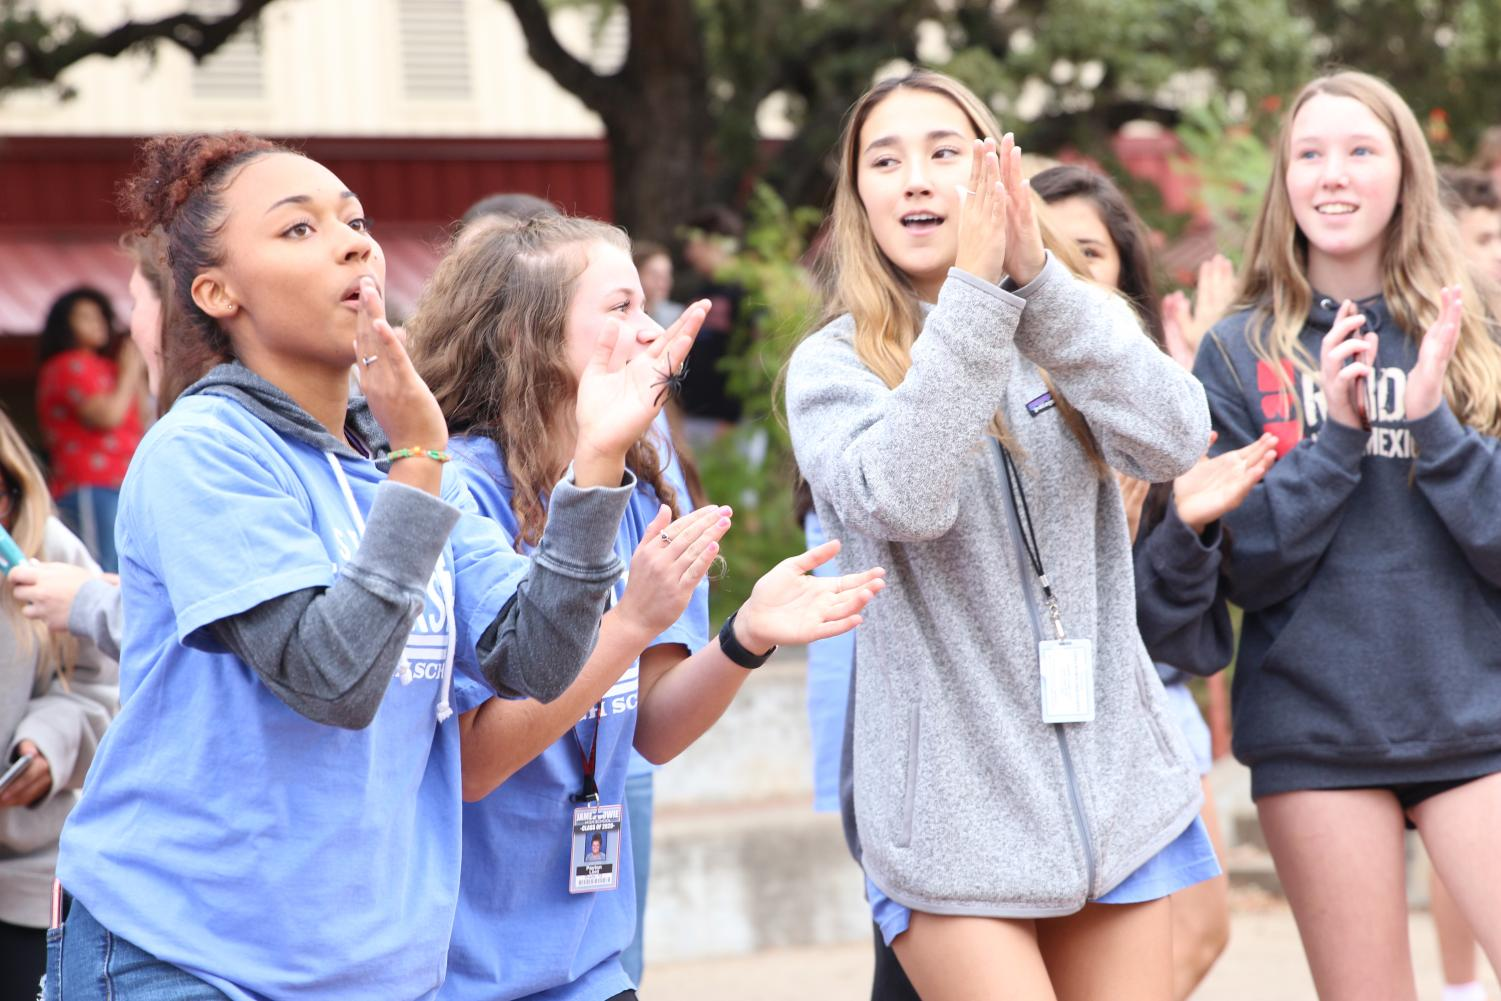 Senior+leadership+students+Lisa+Wilkerson%2C+Payton+Lord%2C+and+Kendall+Oh+dance+in+the+pit+in+hopes+of+bringing+the+student+body+together.+The+Fall+Festival+was+in+the+courtyard+after+the+PSAT+and+was+made+to+promote+a+positive+and+welcoming+environment+on+campus.+